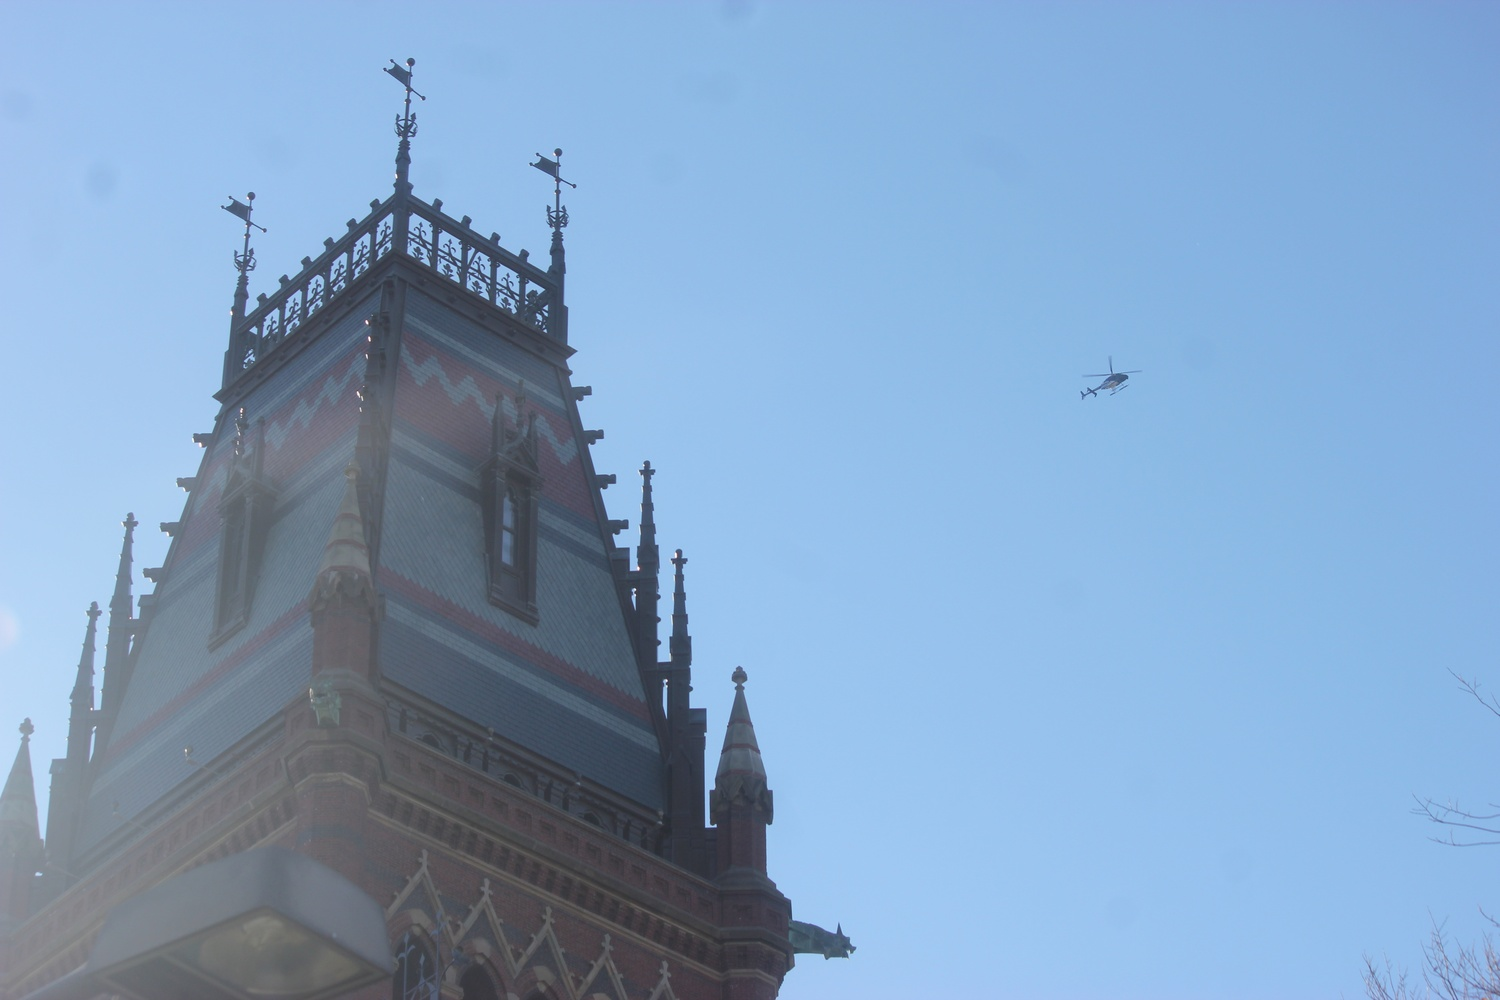 Helicopter over Harvard